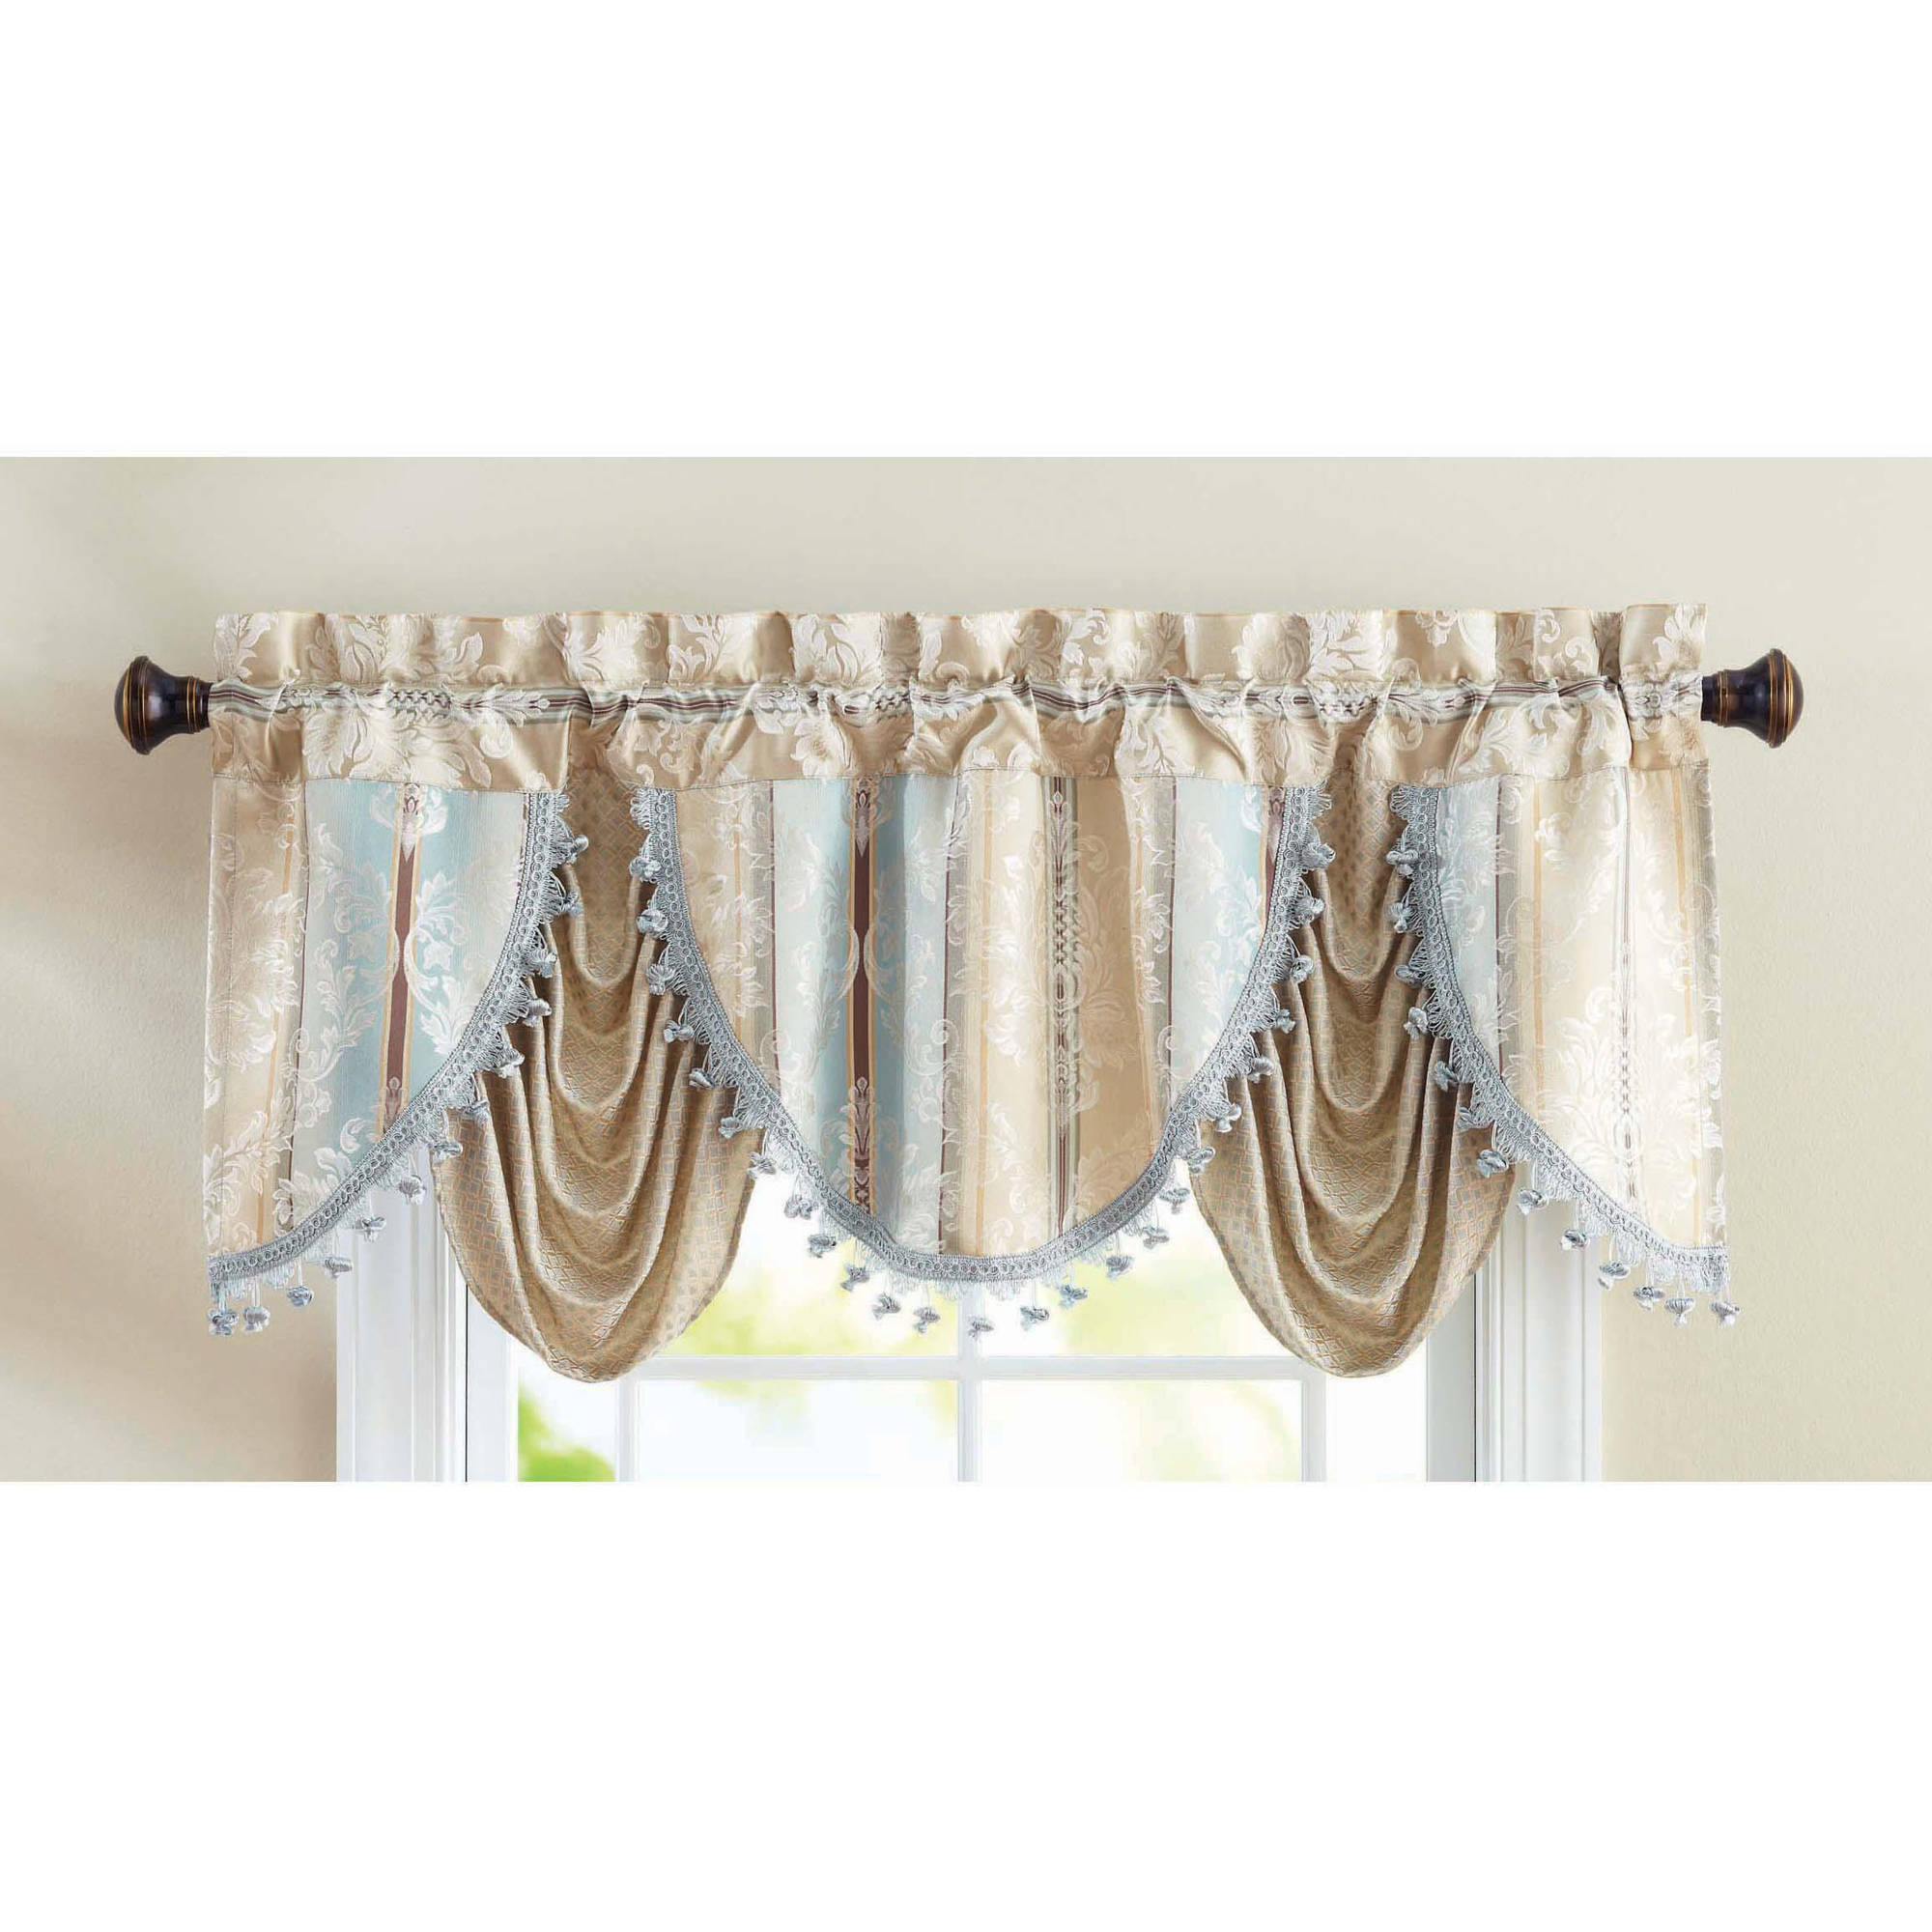 Pioneer Woman Kitchen Curtain And Valance 3pc Set Bandana Teal